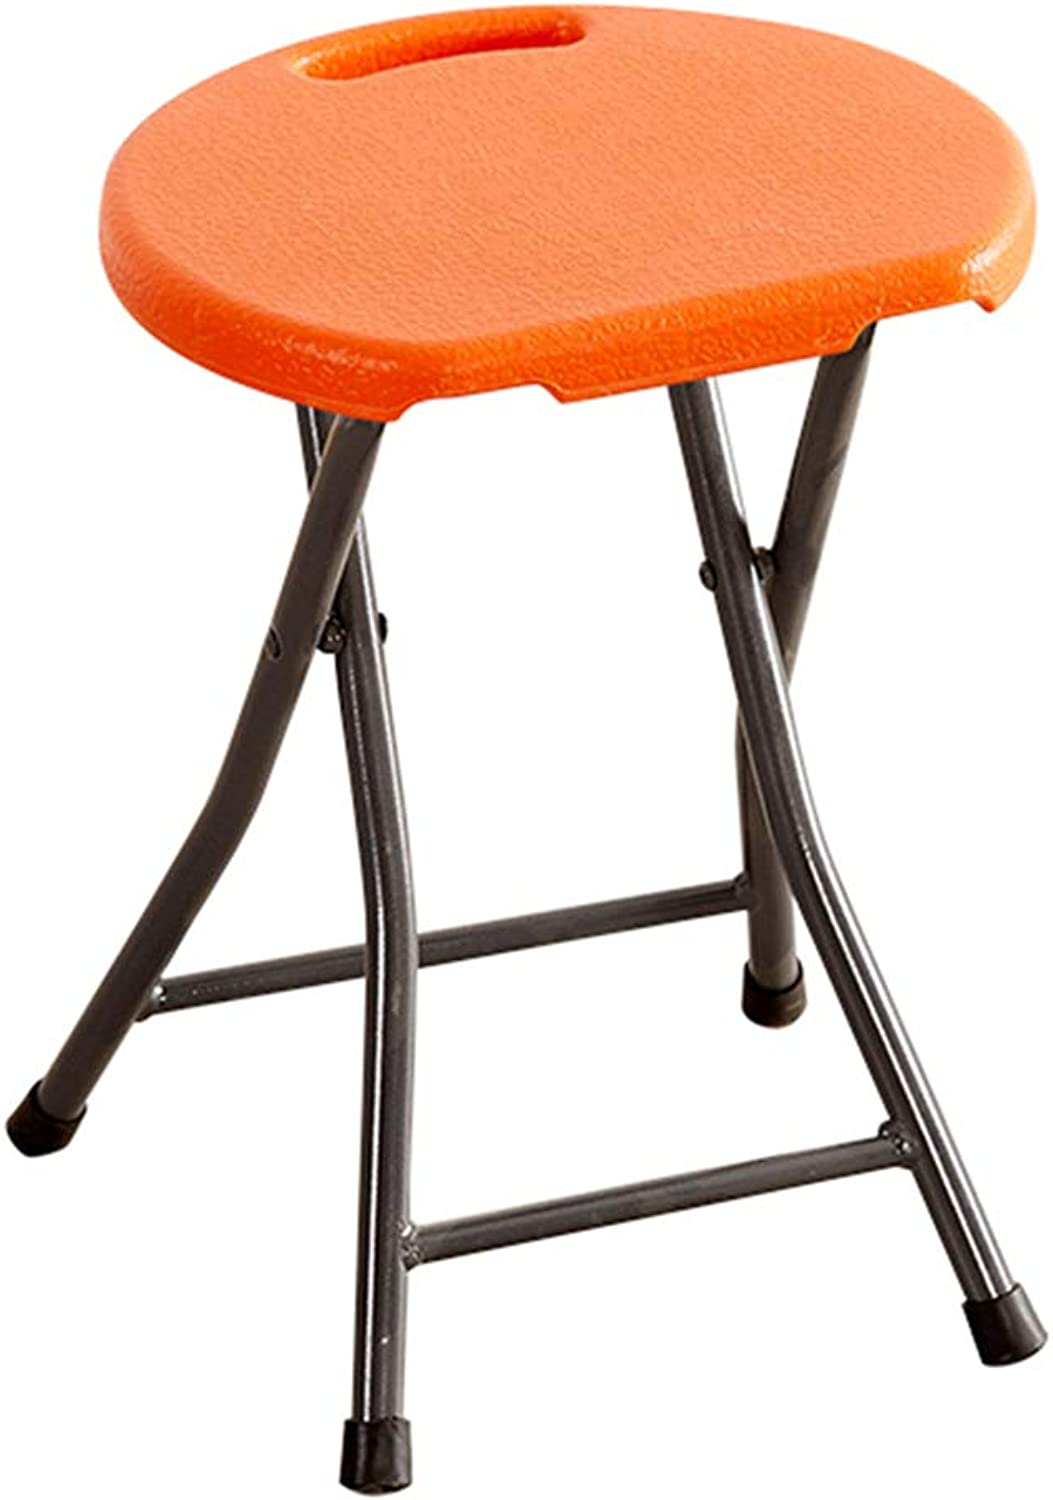 ZHAOYONGLI Folding Stool Folding Step Mazza Portable Stool Mazar shoes Stool Footstool Step Stool Adjustable Foot Rest Collapsible Simple Household Portable Small Bench Creative solid durable long last